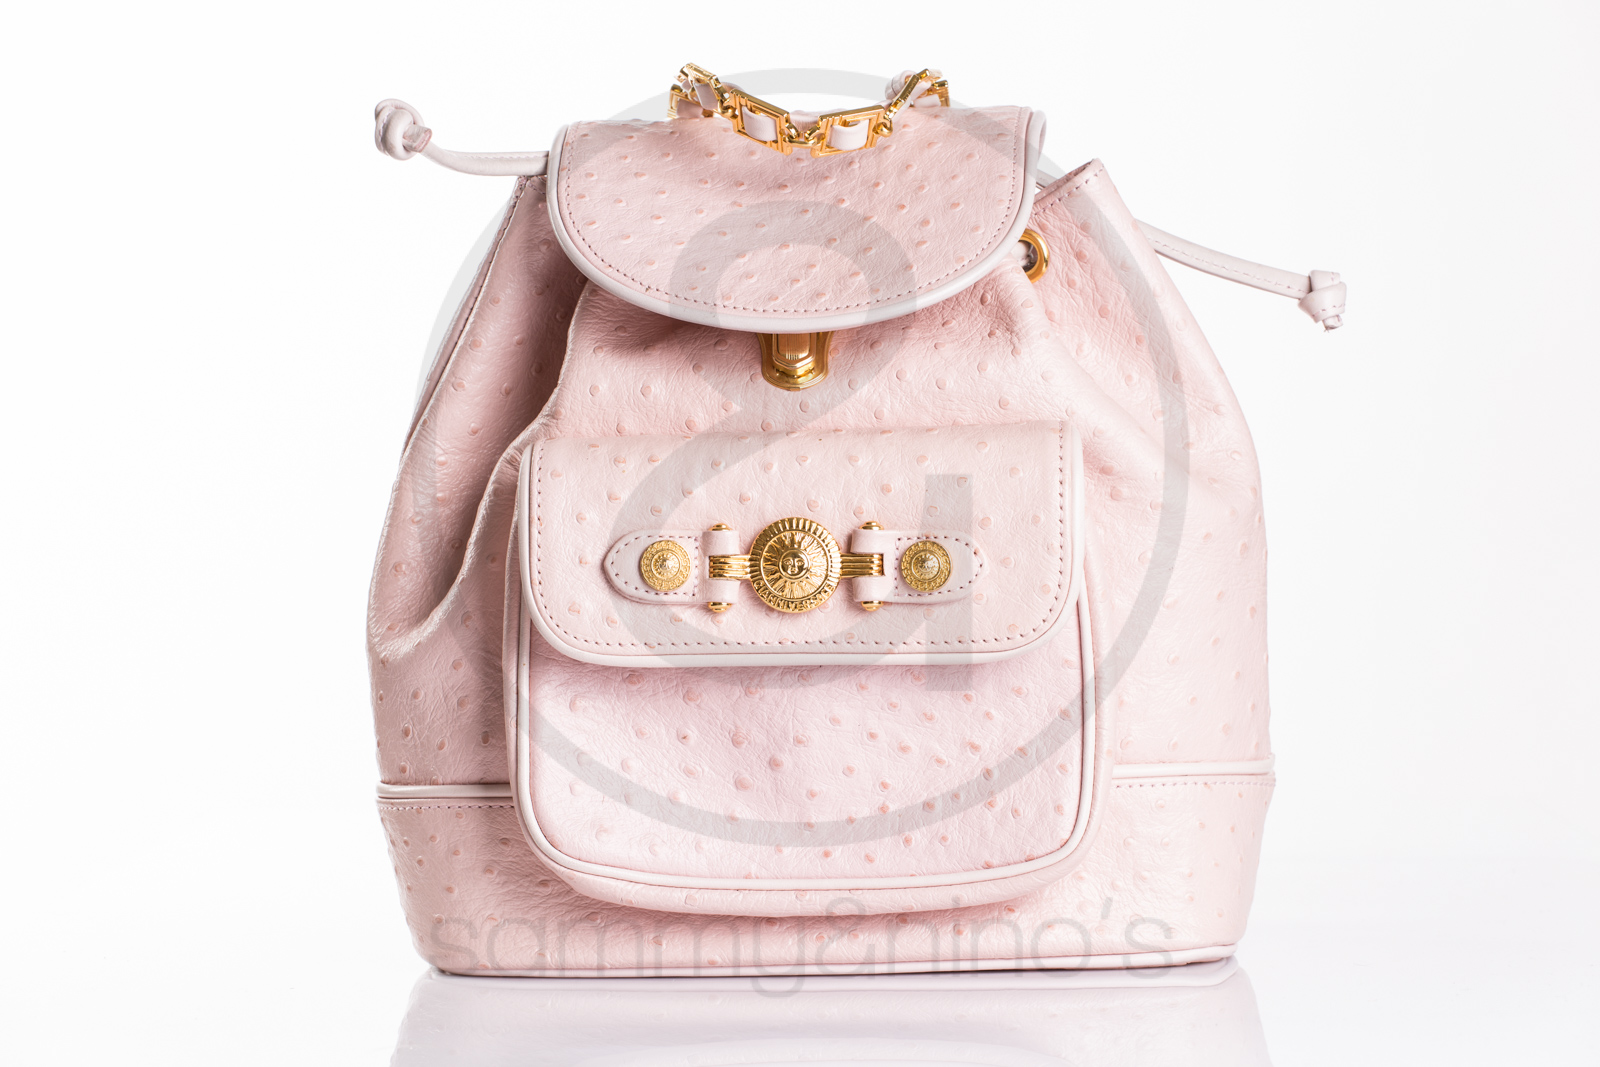 5832d73a32 Previous  Next. HomeSOLD OUTGianni Versace backpack ostrich leather